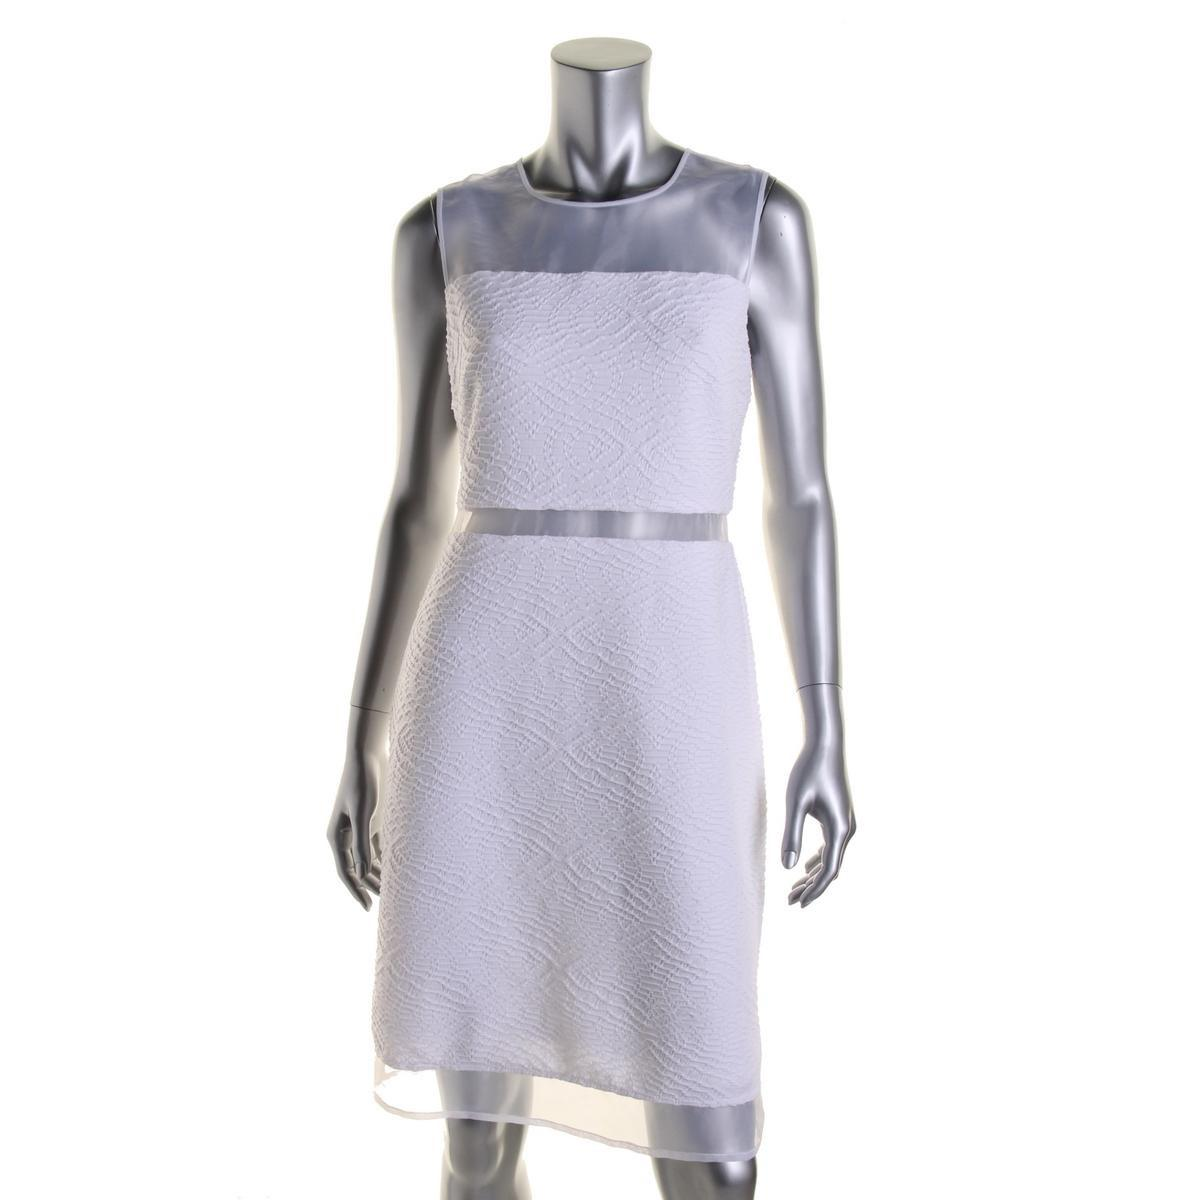 71f4cbad9 Lyst - Calvin Klein Juniors Mesh Inset Sleeveless Party Dress in White